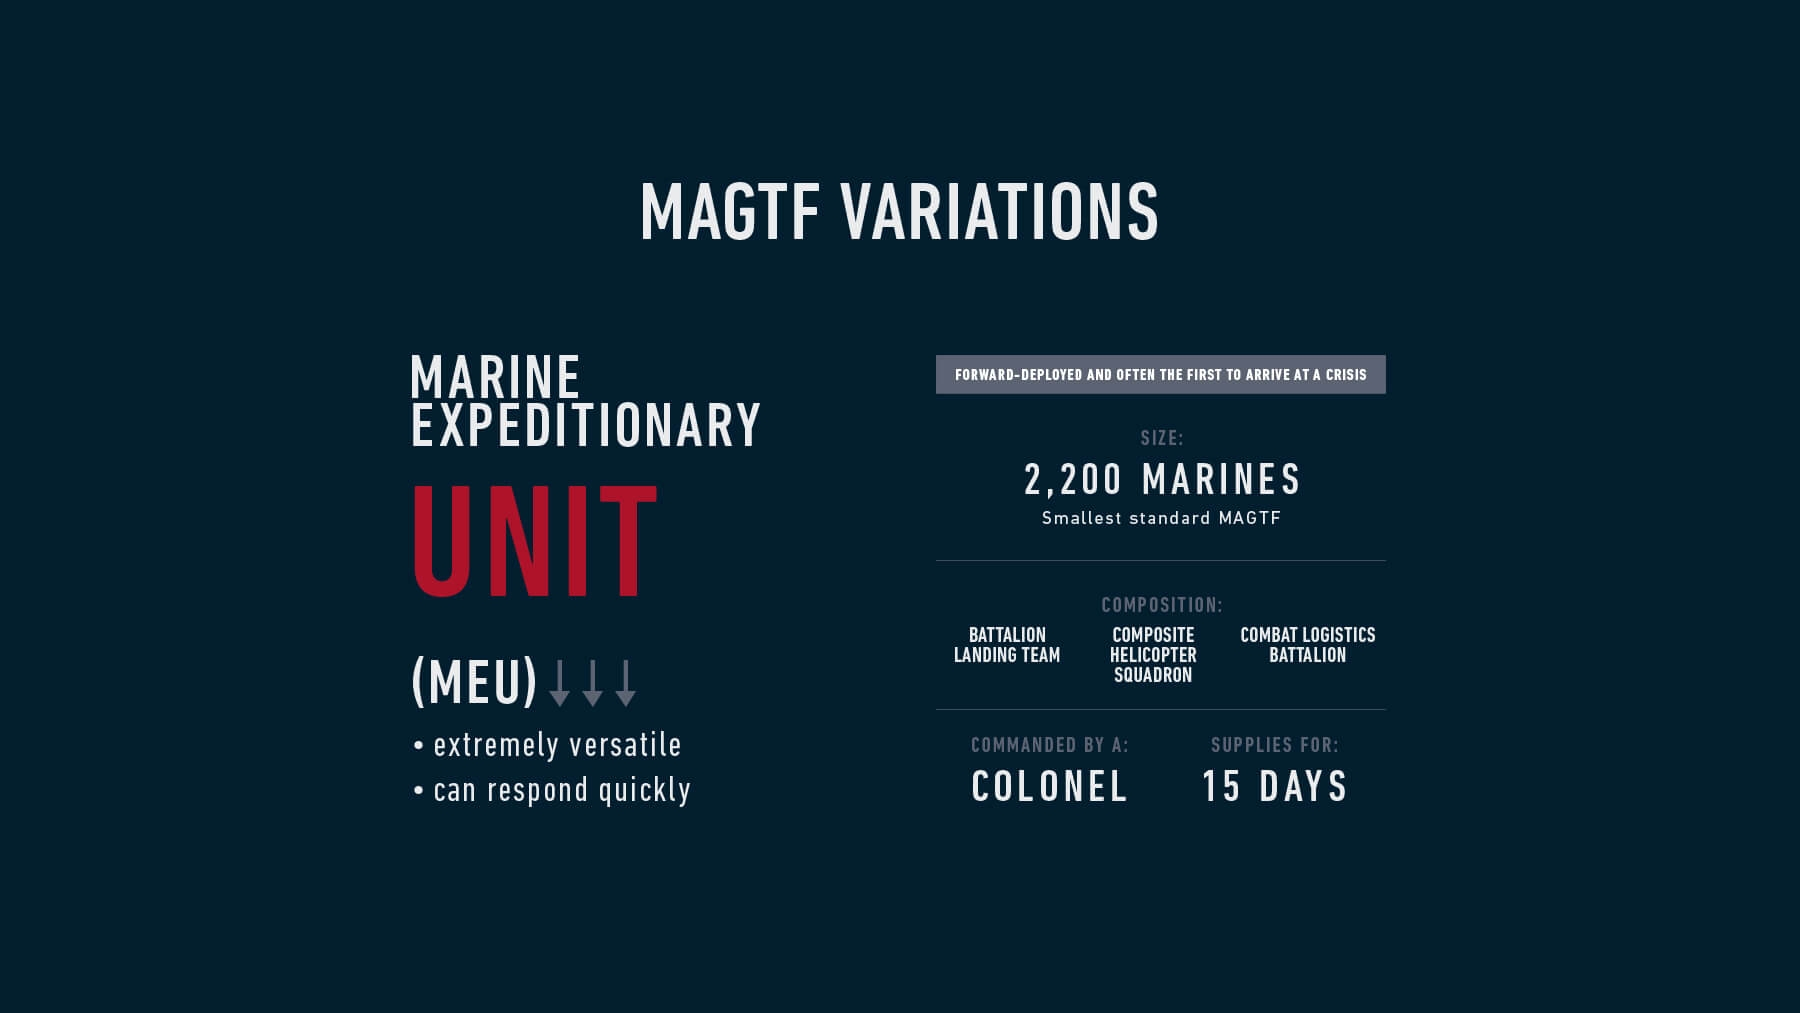 Infographic detailing a Marine Expeditionary Unit, or a MEU.